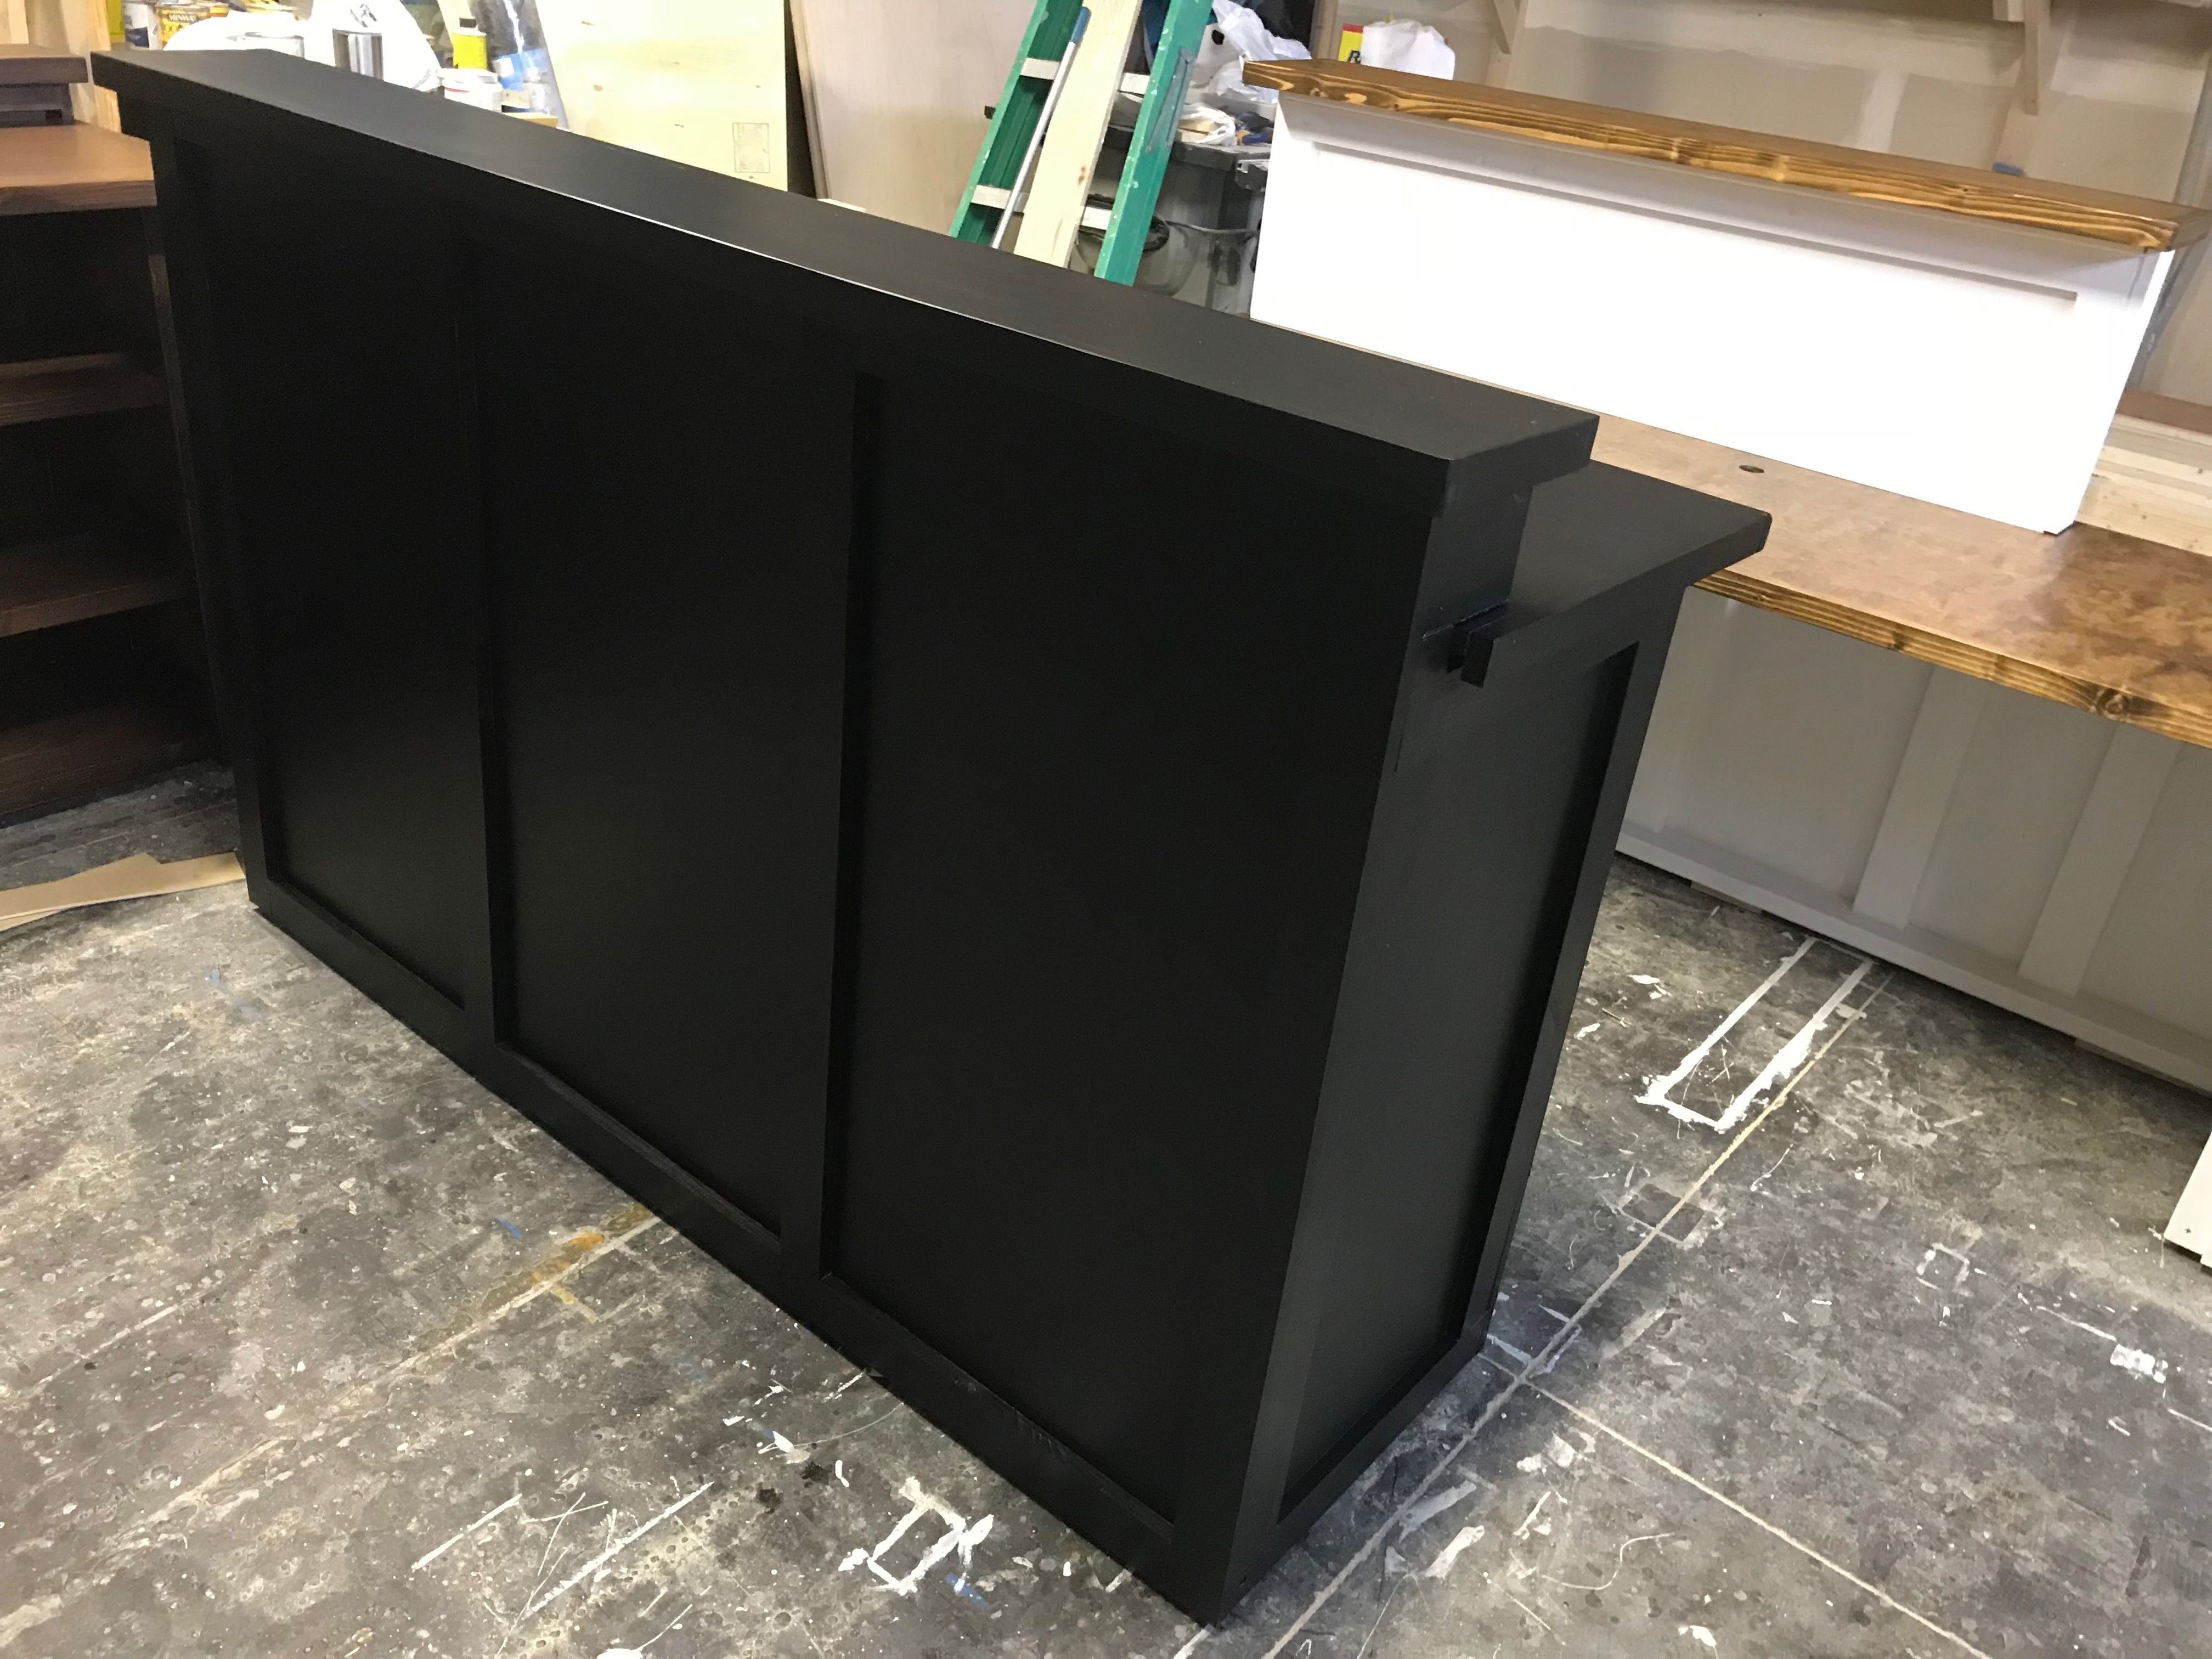 Store Front Reception Desk Painted All Black Handcrafted Dining Table Reception Front Desk Reception Desk